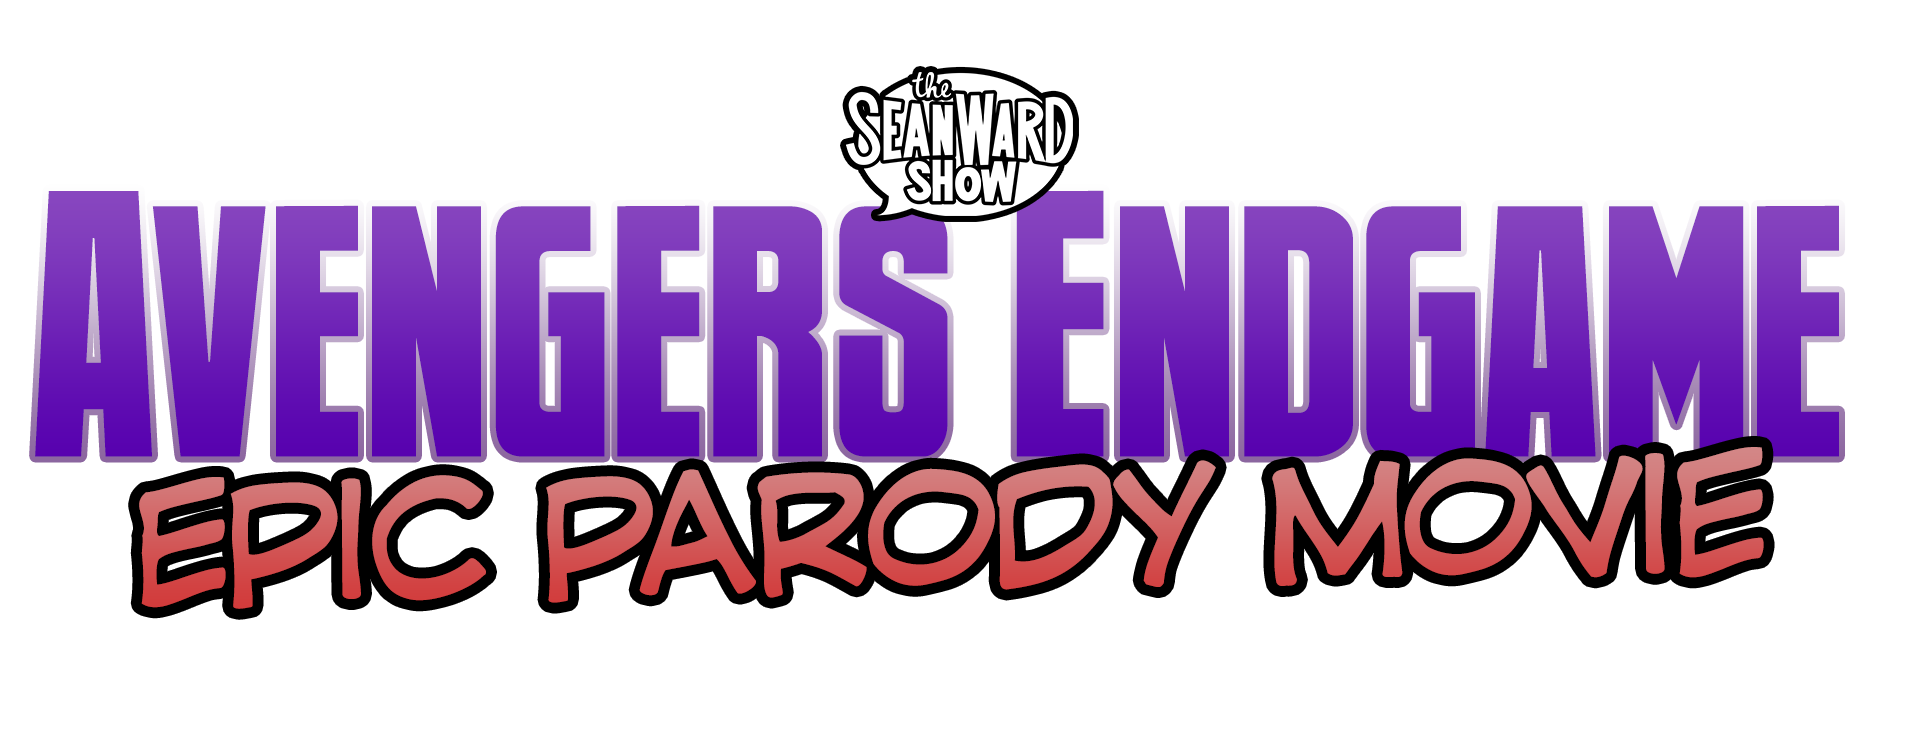 avengers endgame parody title.png